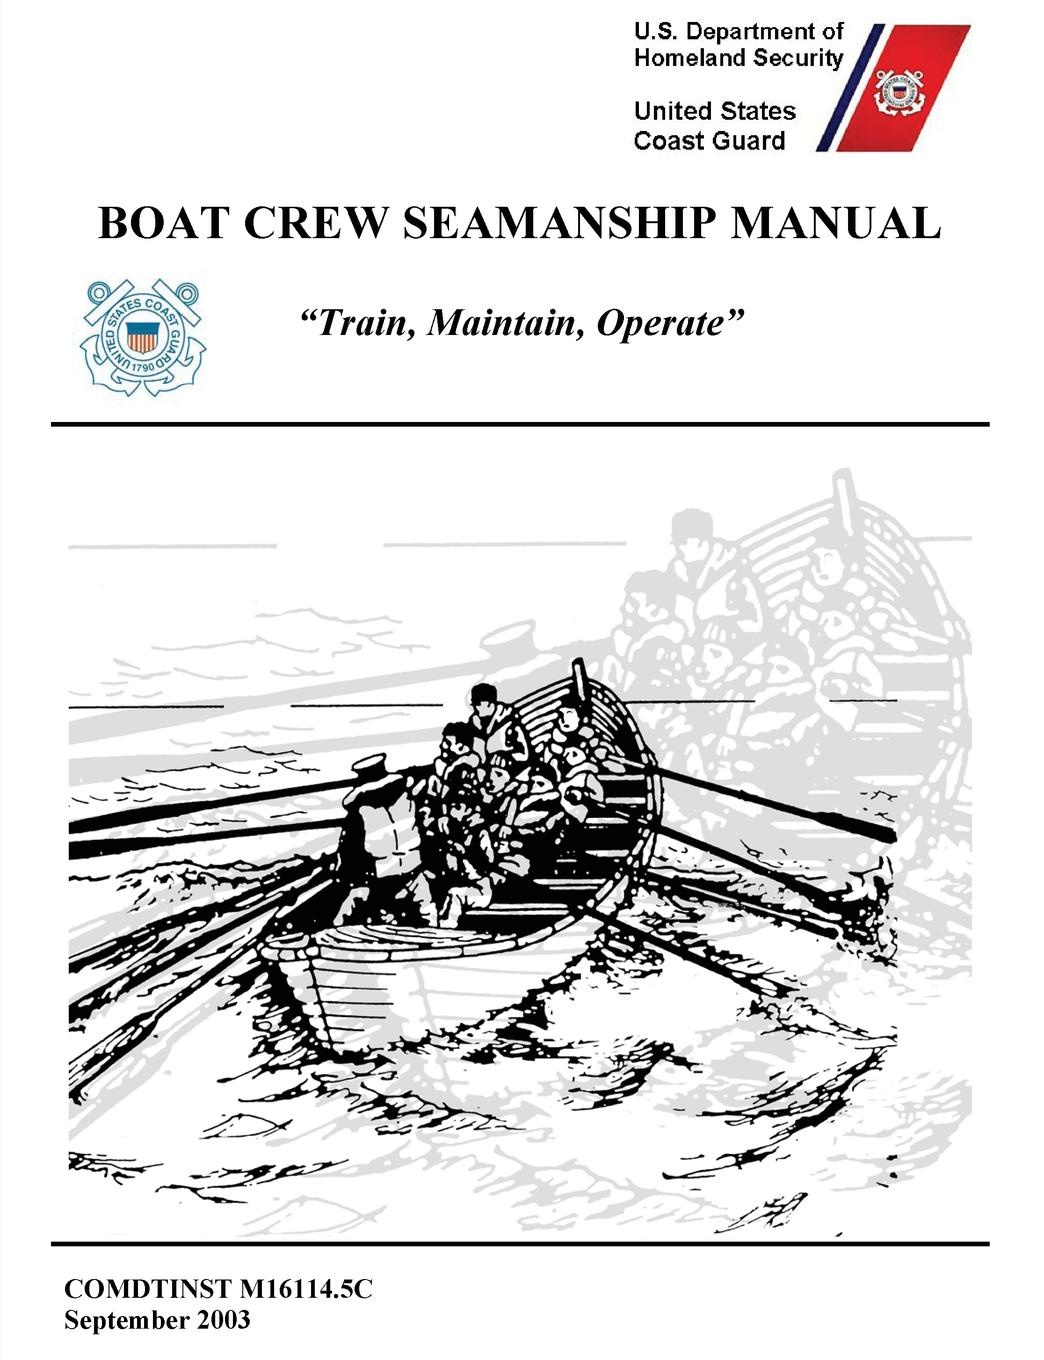 United States Coast Guard, U.S. Department of Homeland Security Boat Crew Seamanship Manual (COMDTINST M16114.5C) the crew 2 [ps4]